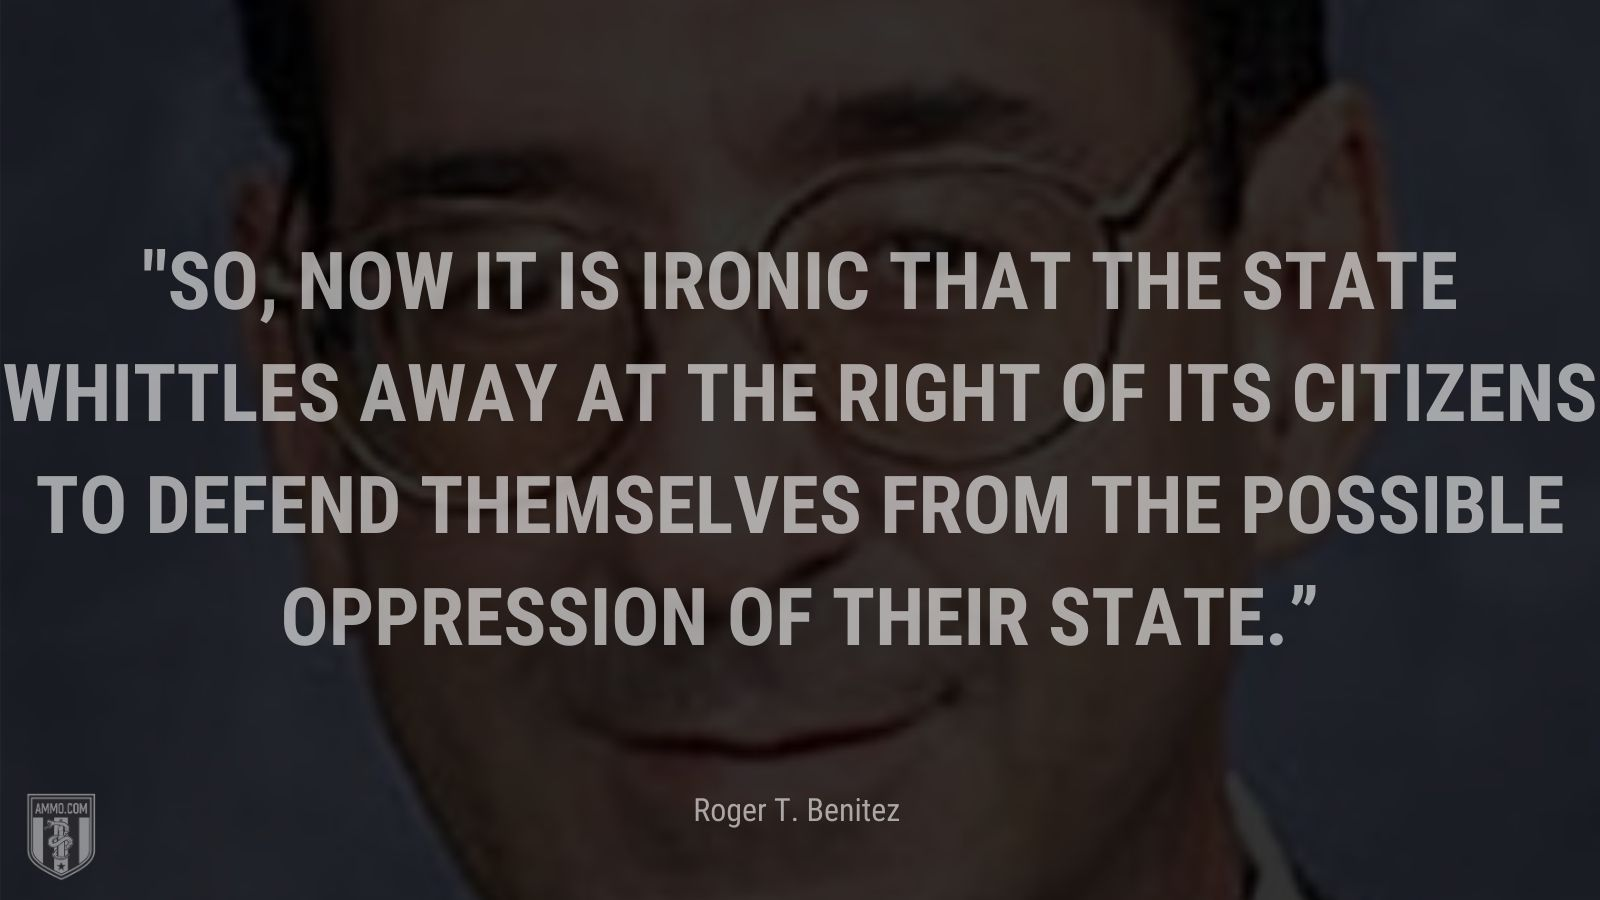 """""""So, now it is ironic that the State whittles away at the right of its citizens to defend themselves from the possible oppression of their State."""" - Roger T. Benitez"""